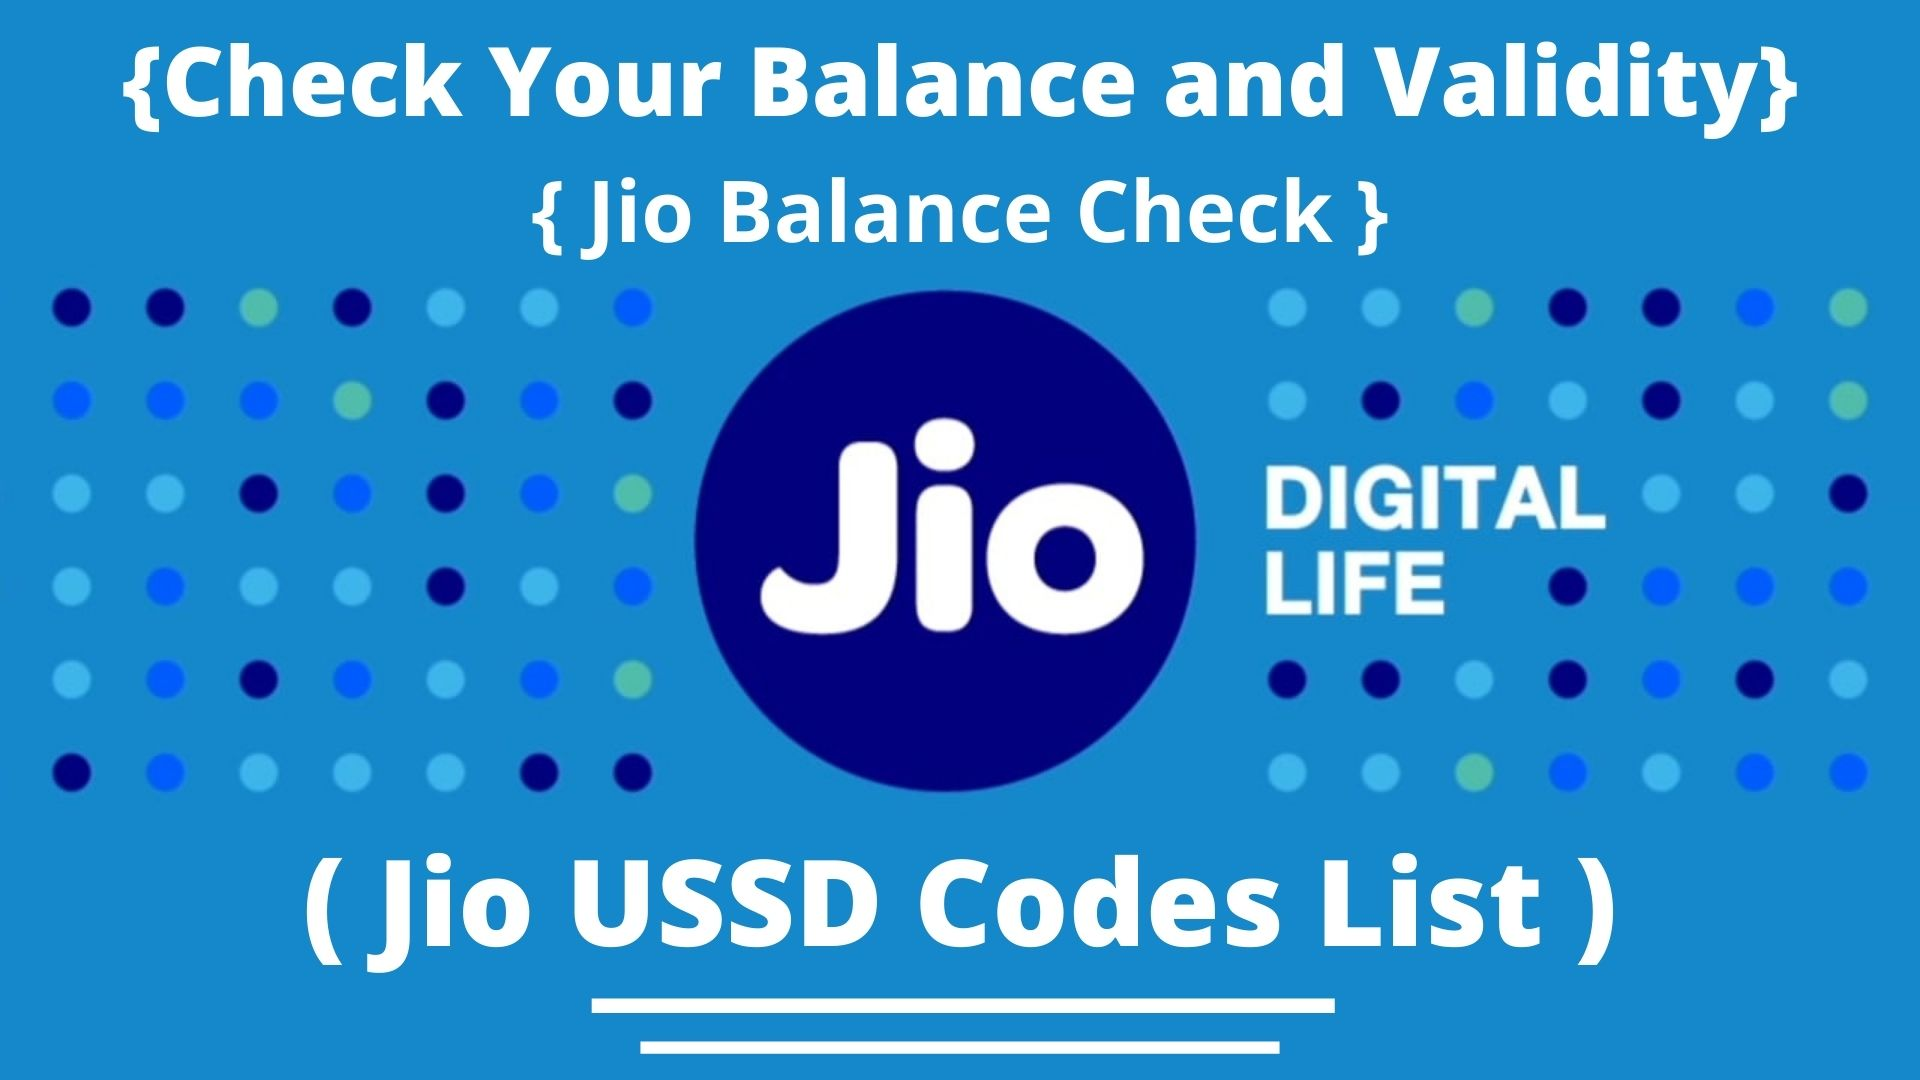 Jio USSD Codes List